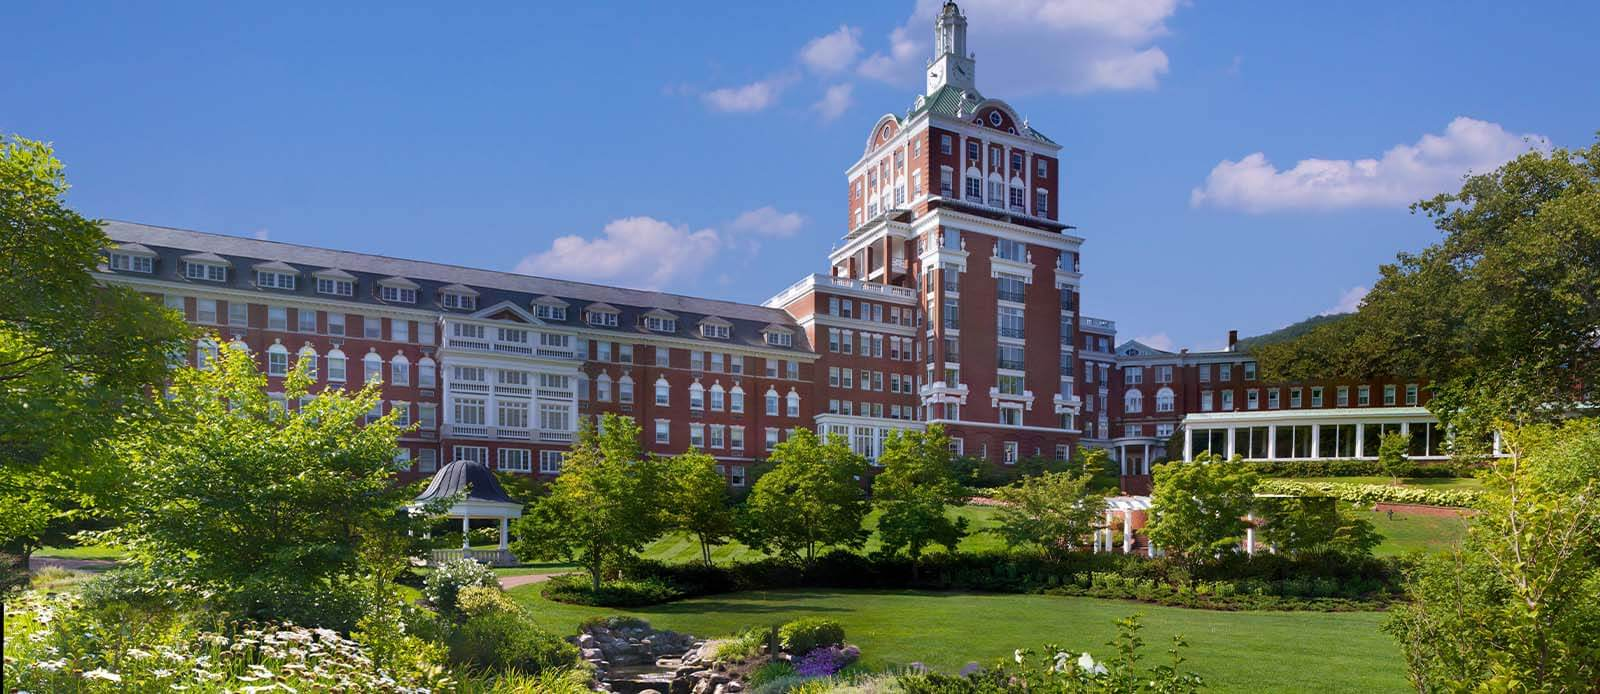 Image of exterior of The Omni Homestead Hotel